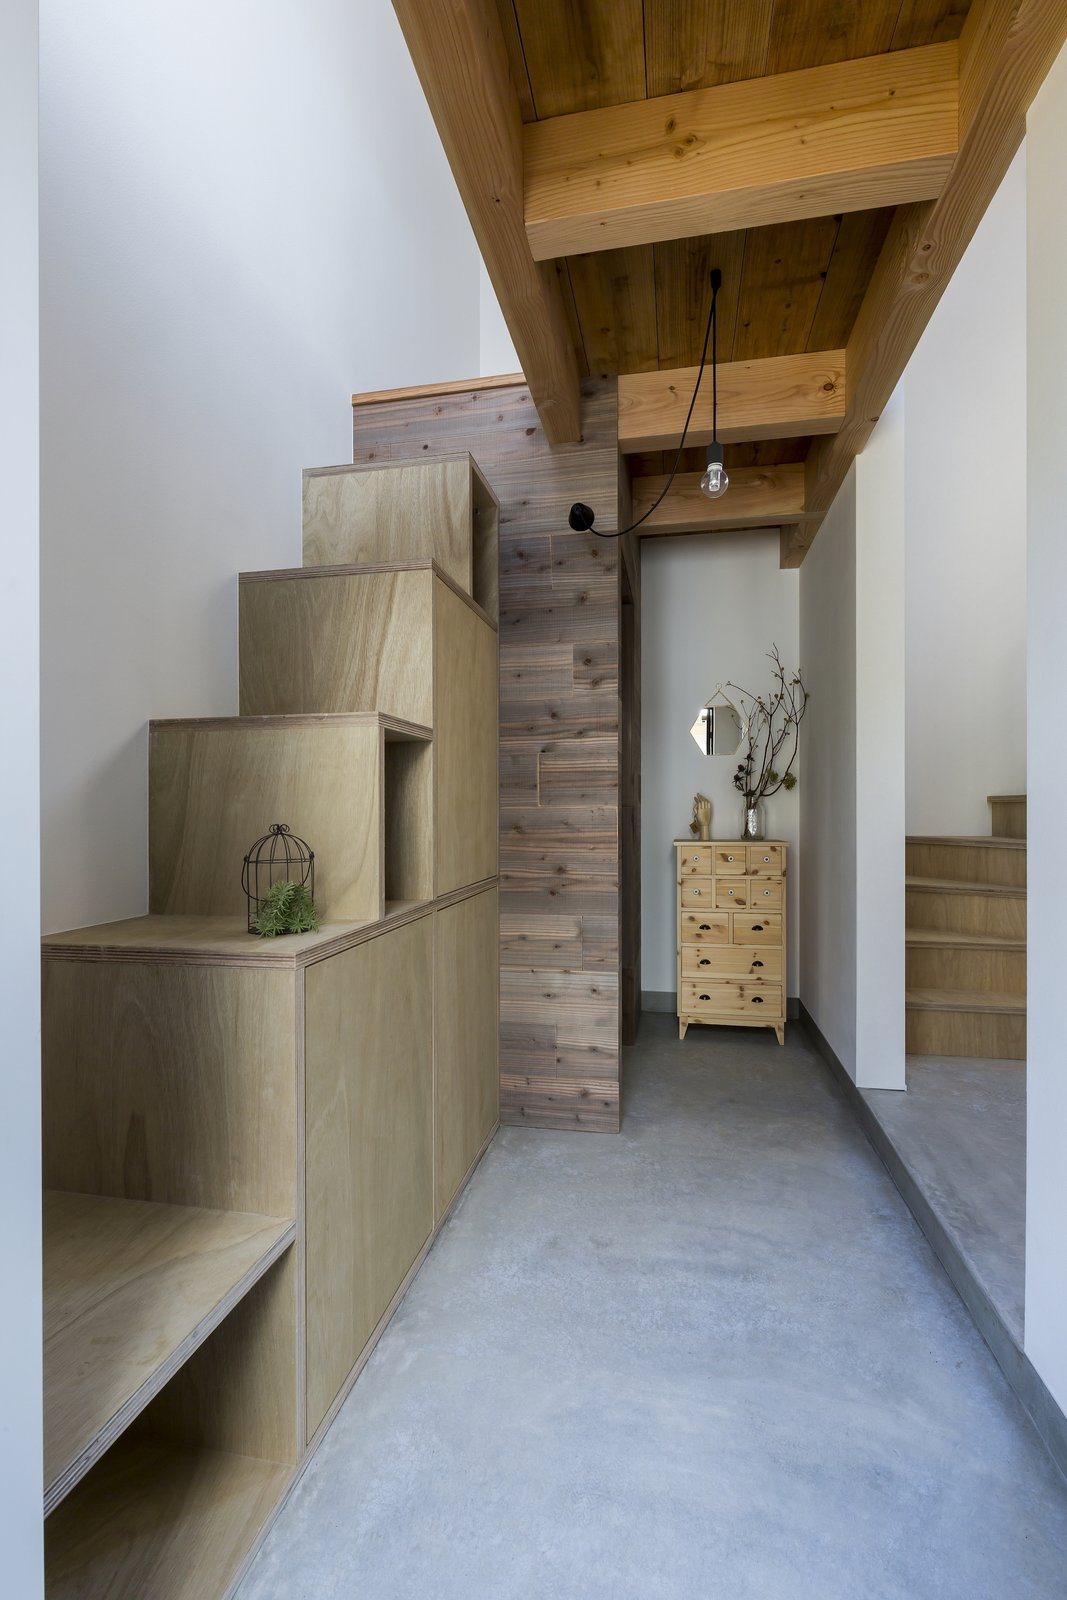 Photo 3 of 4 in Uji House by ALTS Design Office